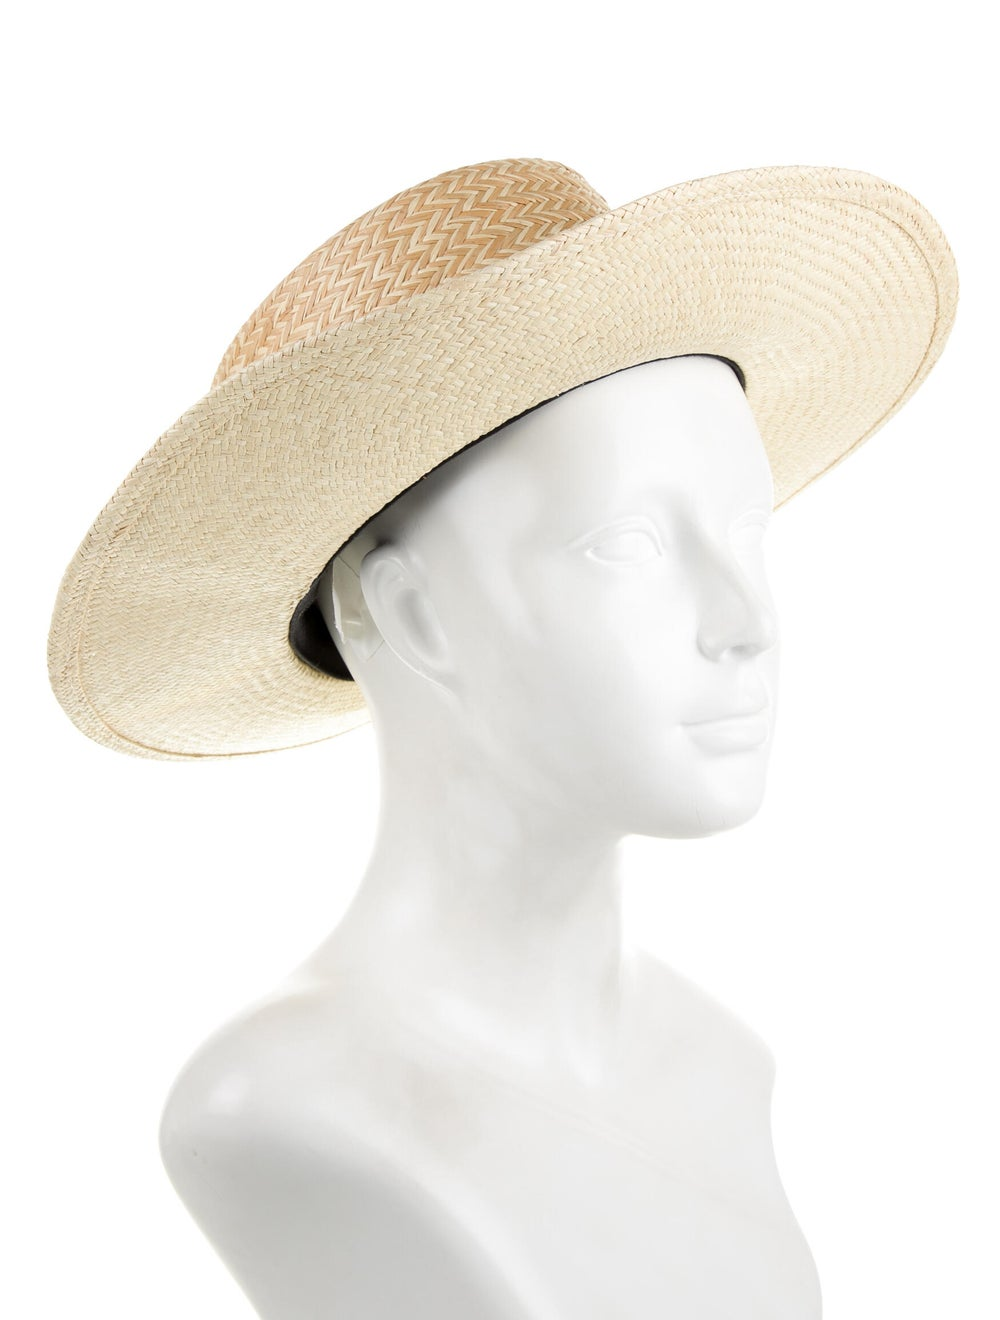 Kin The Label Straw Summer Hat - image 3